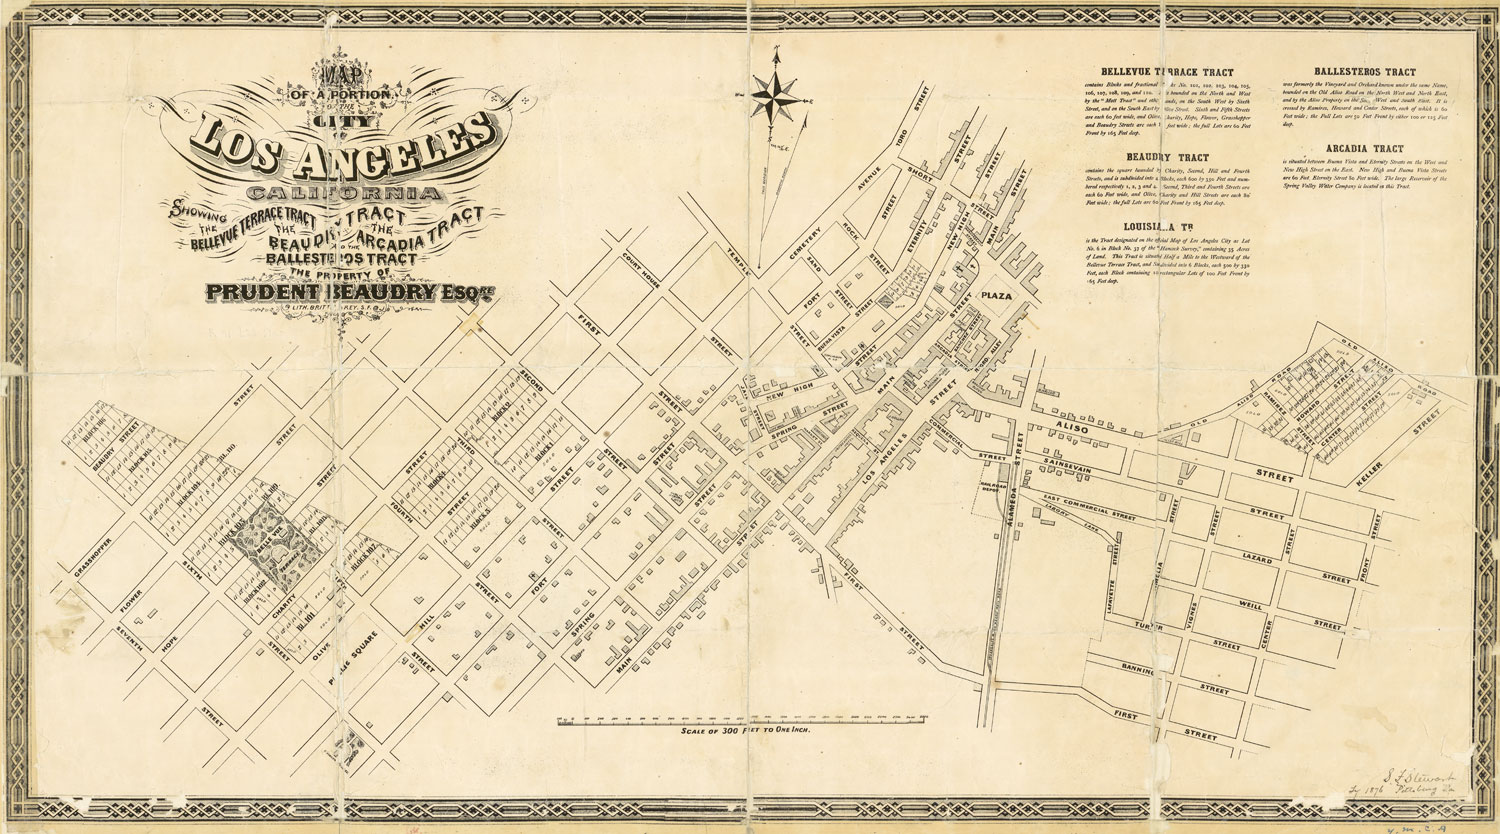 Bellevue Terrace appears prominently within the larger, trapezoidal Bellevue Terrace Tract in this 1868 map of Beaudry's real estate holdings. Courtesy of the Map Collection - Los Angeles Public Library.